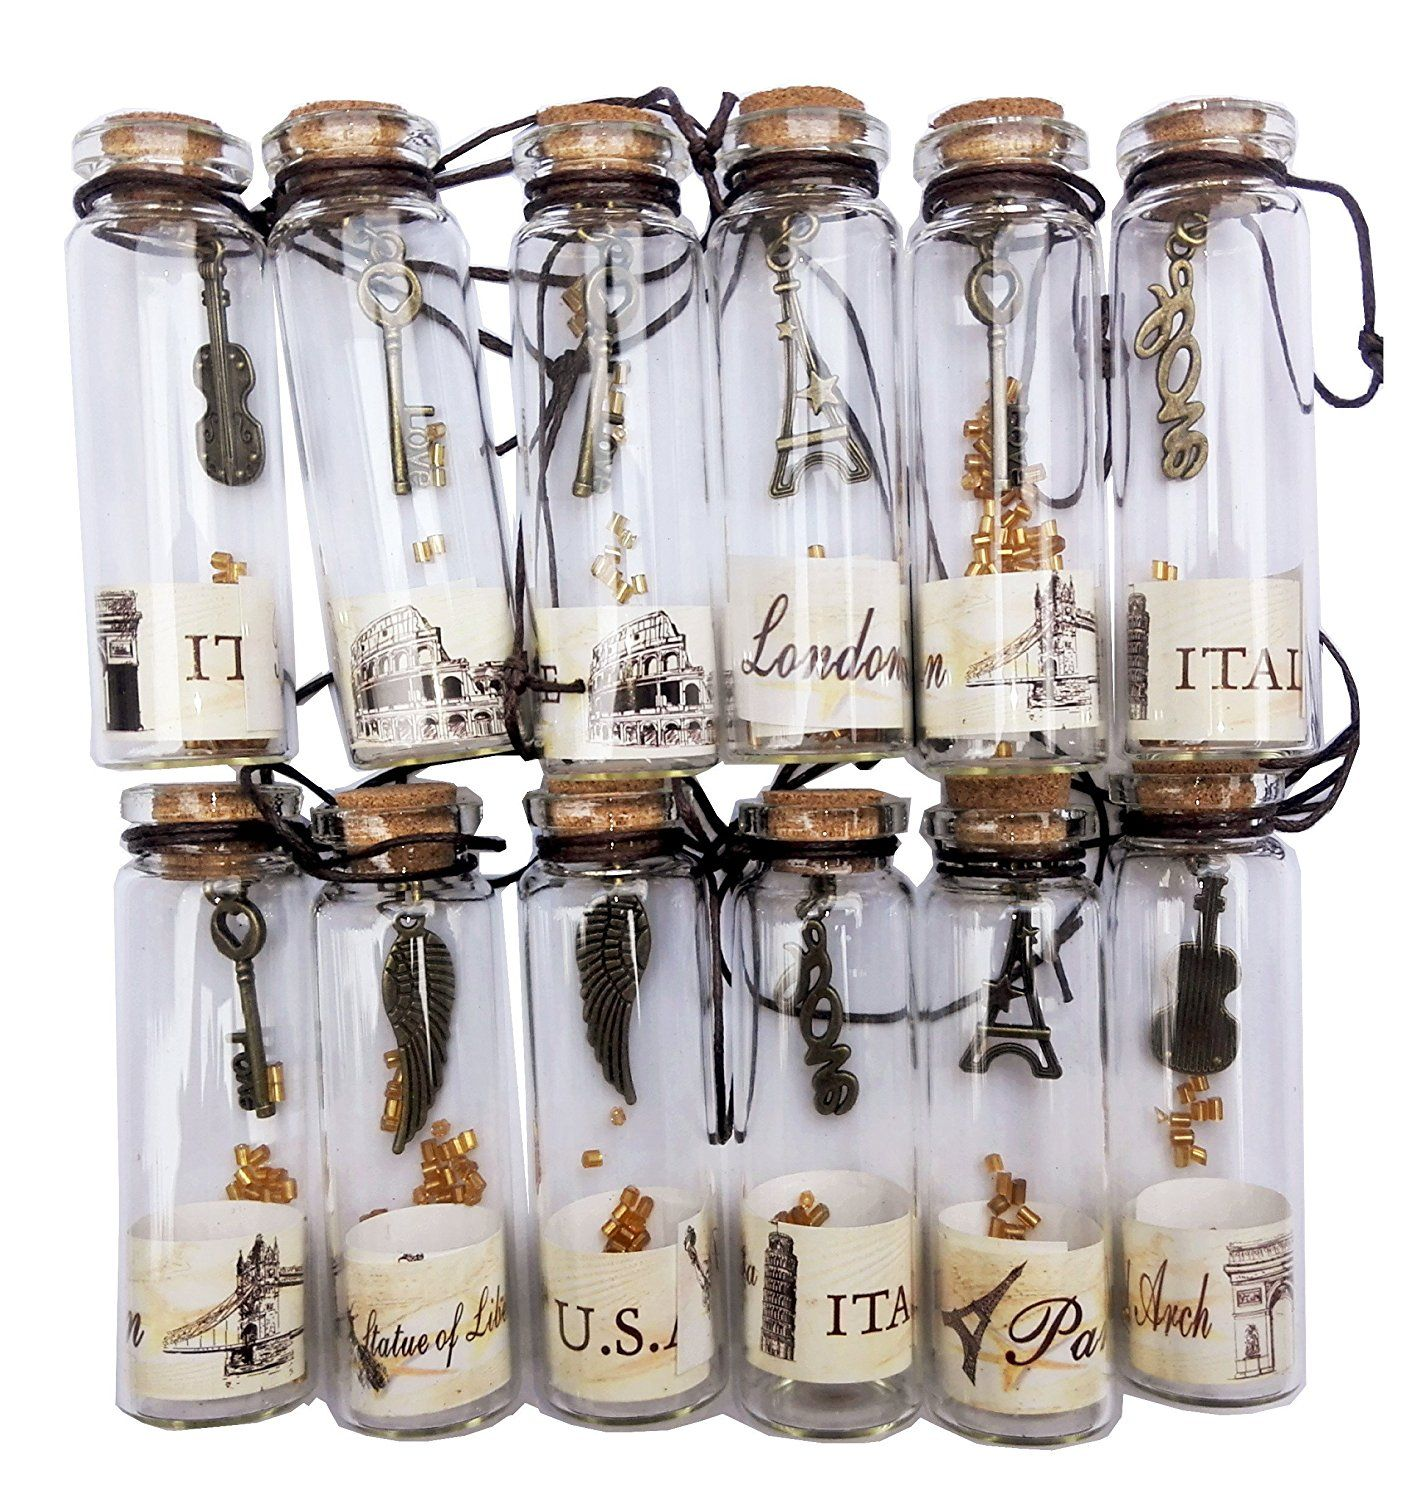 Steampunk vials | Steampunkish | Pinterest